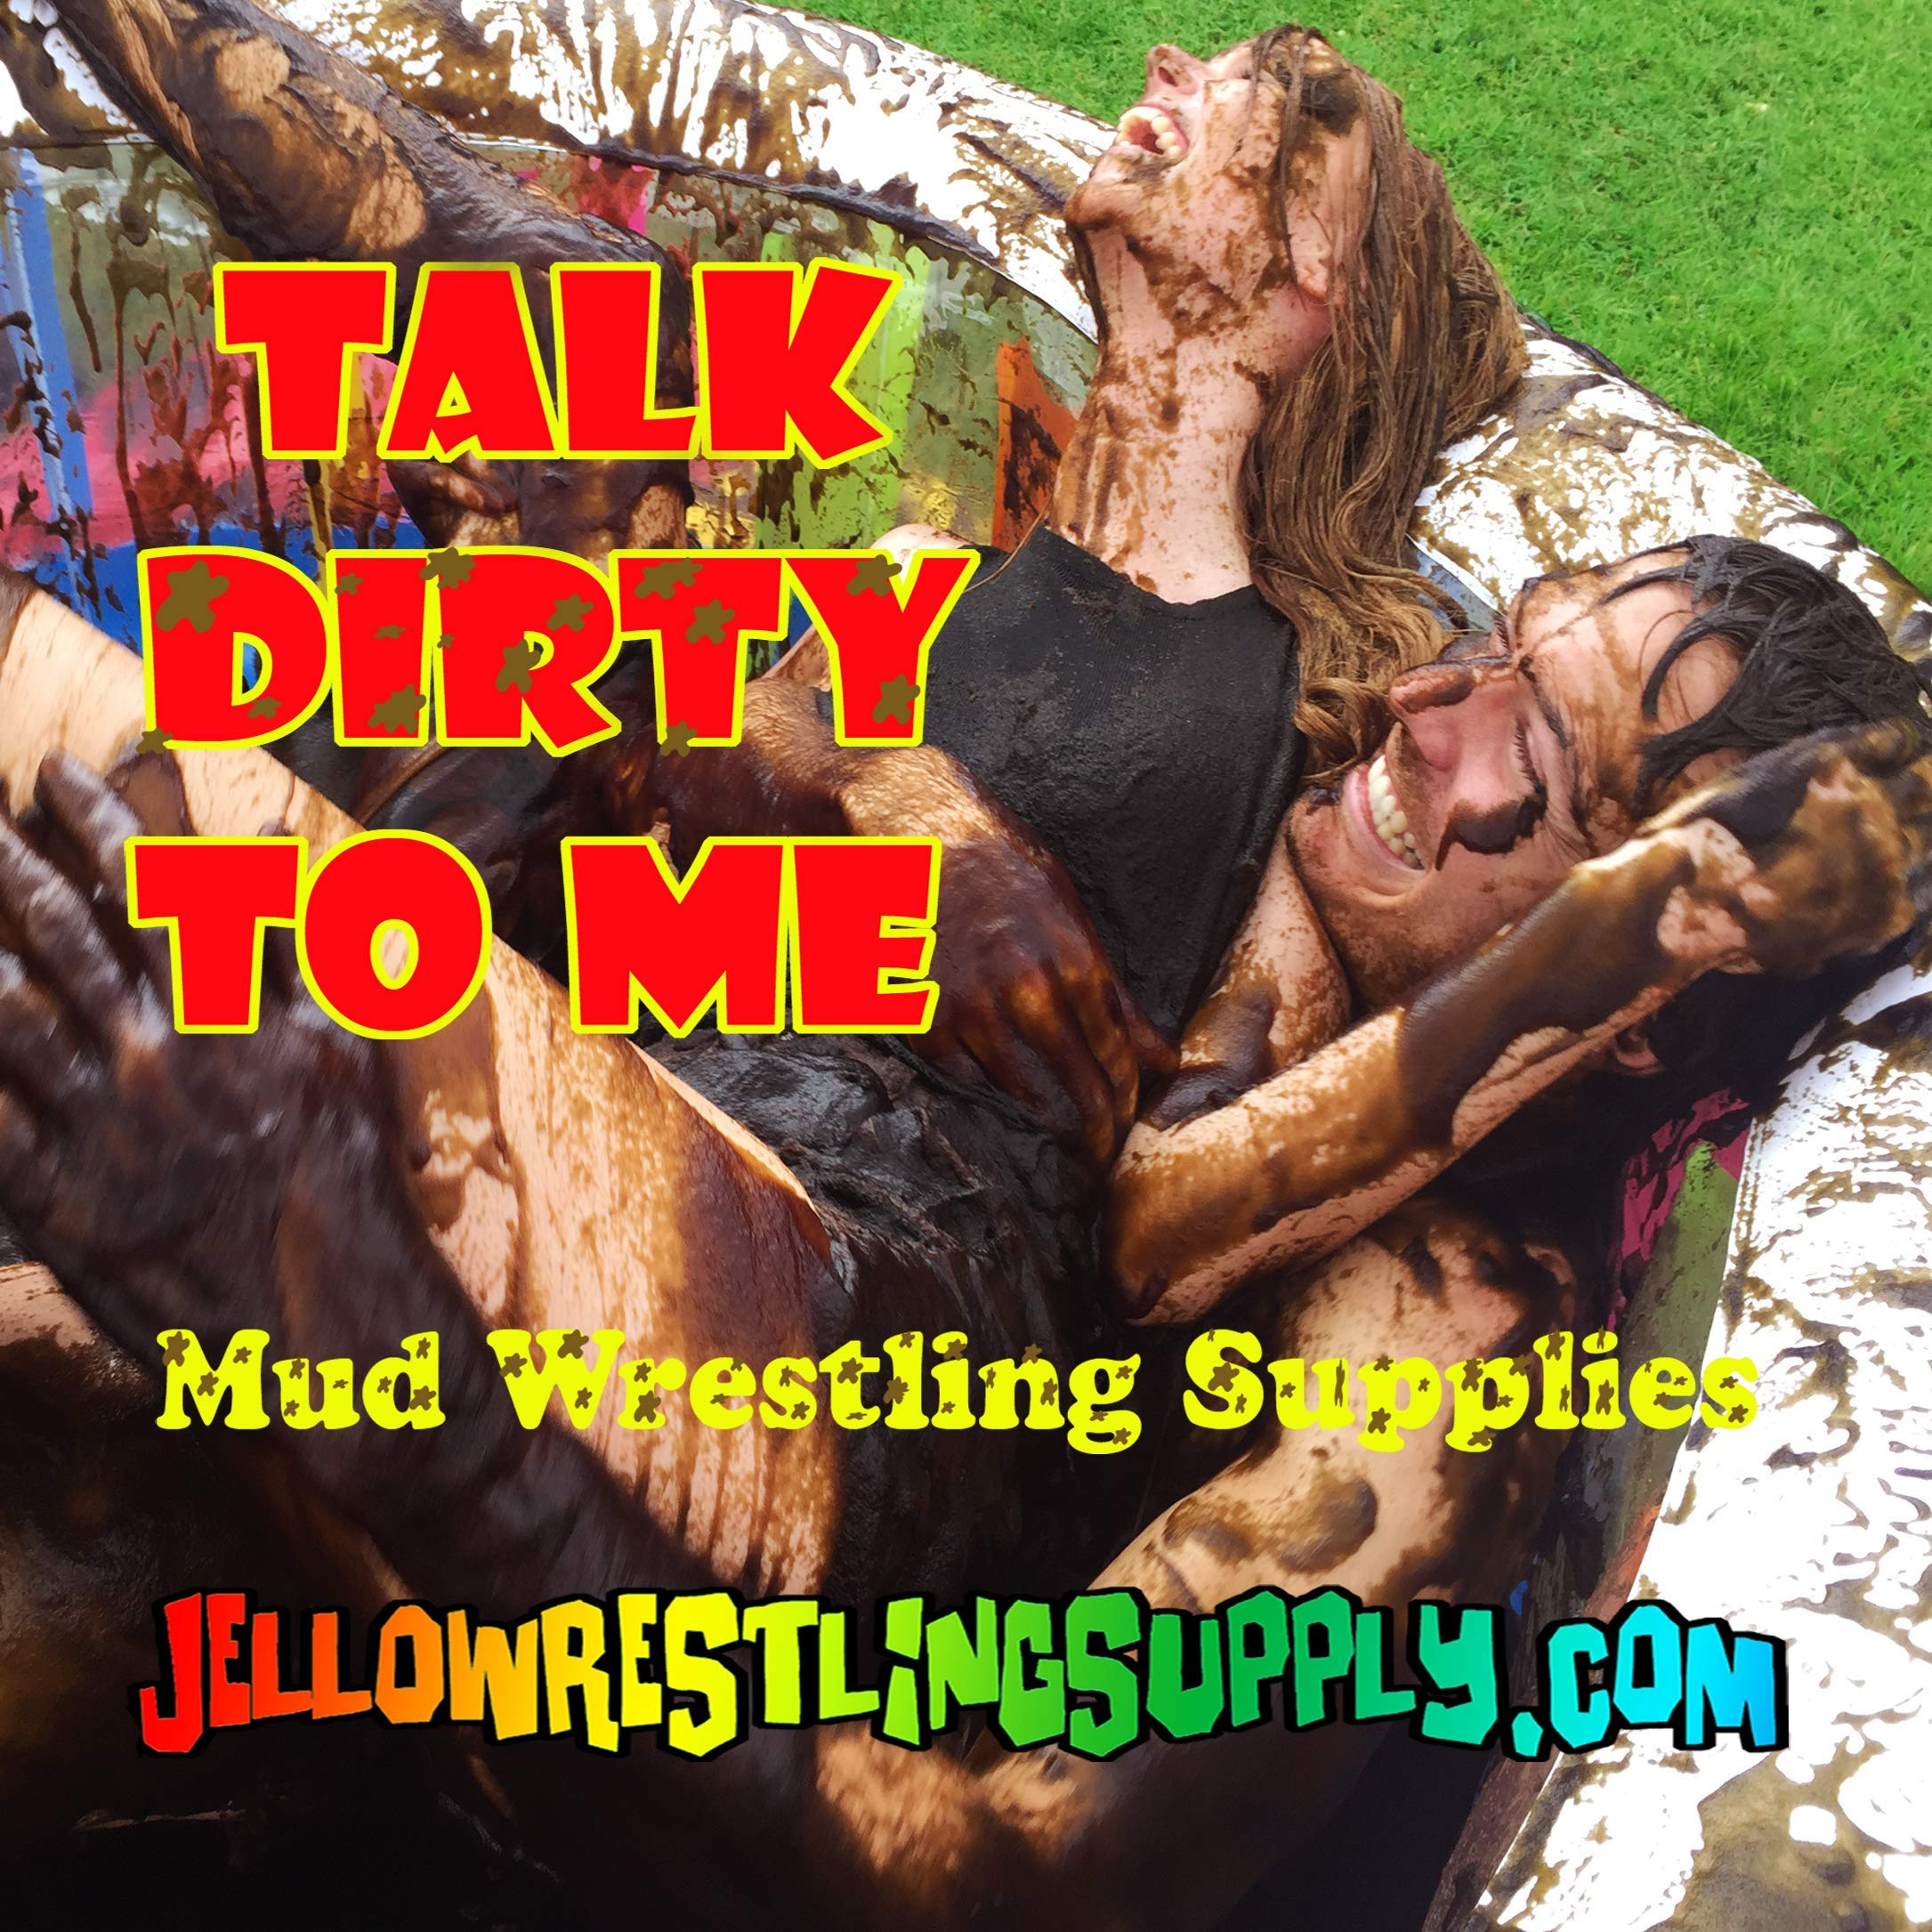 INSTANT MUD for Wrestling, Mud Pies, Balloons & Bombs JUST ADD WATER Bulk Mud powder makes 60 GALLONS of fake mud. Safe, clean mud run obstacle pits, pitch burst, Slime sludge messy kit oil tar by JelloWrestlingSupply.com (Image #5)